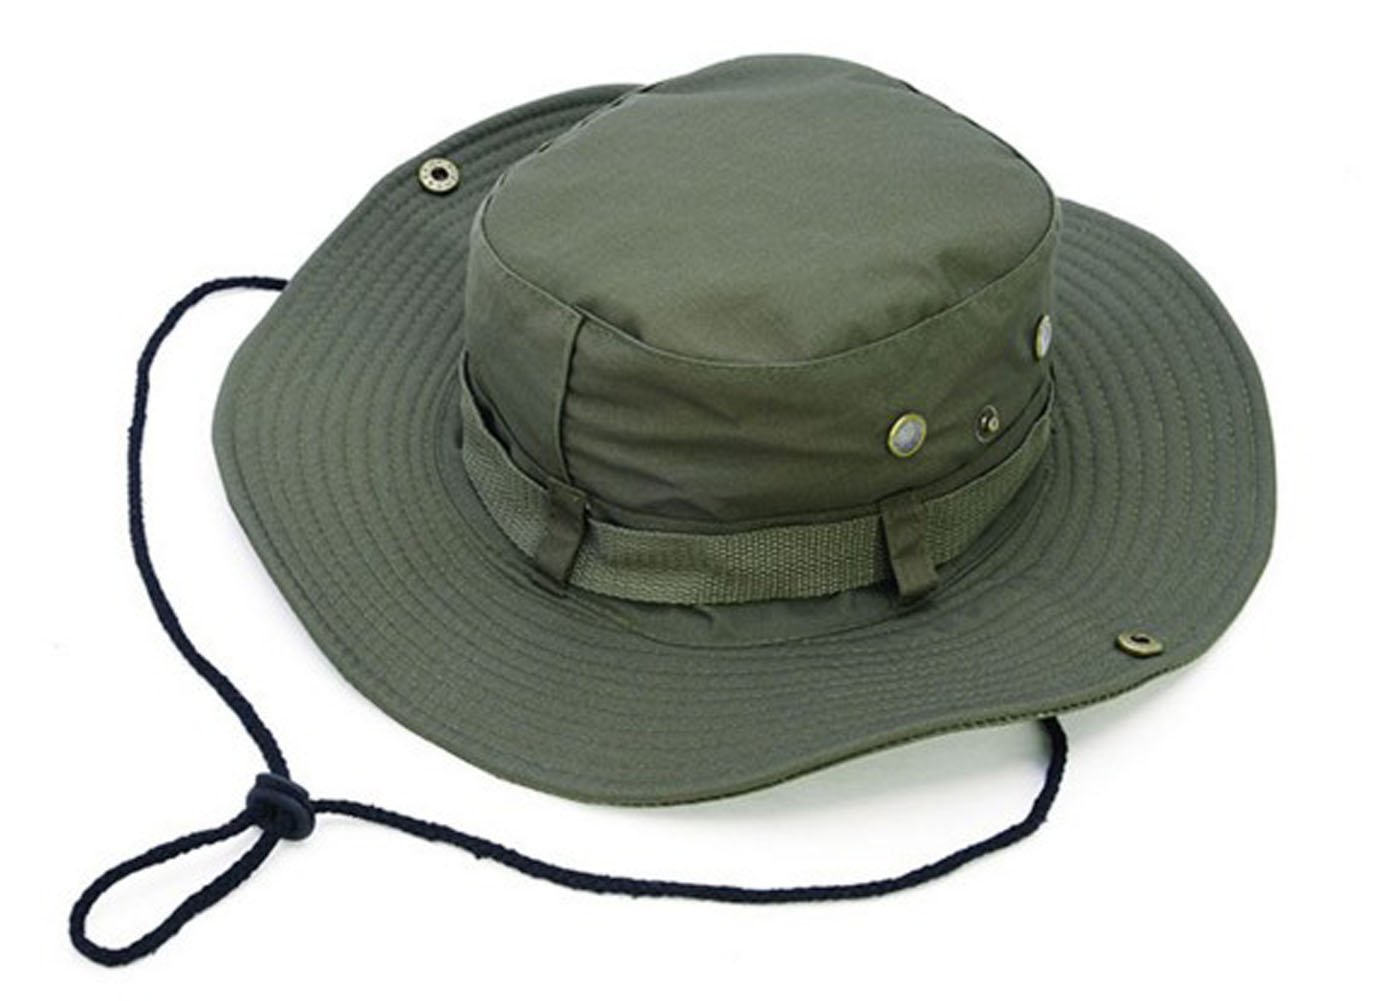 8647a238 Keross Wide Brim Sun Boonie Hat Summer Bucket Caps Perfect for Camping  Fishing Safari Hiking Outdoor Activity UV Protection: Amazon.ca: Jewelry